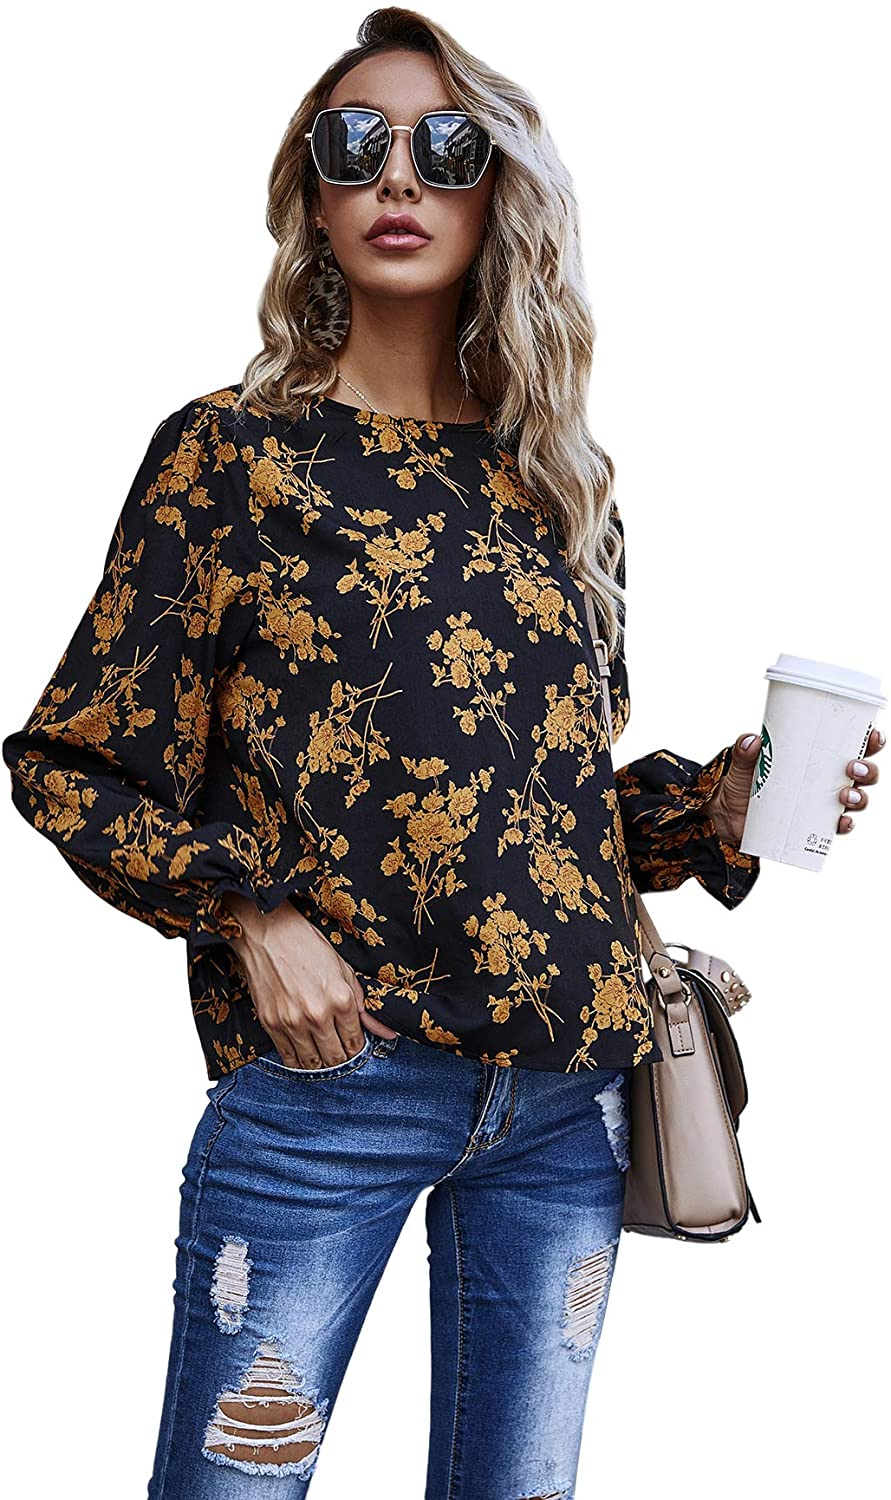 Milumia Women's Casual Floral Print Flounce Long Sleeve Round Neck Keyhole Back Blouse Tops